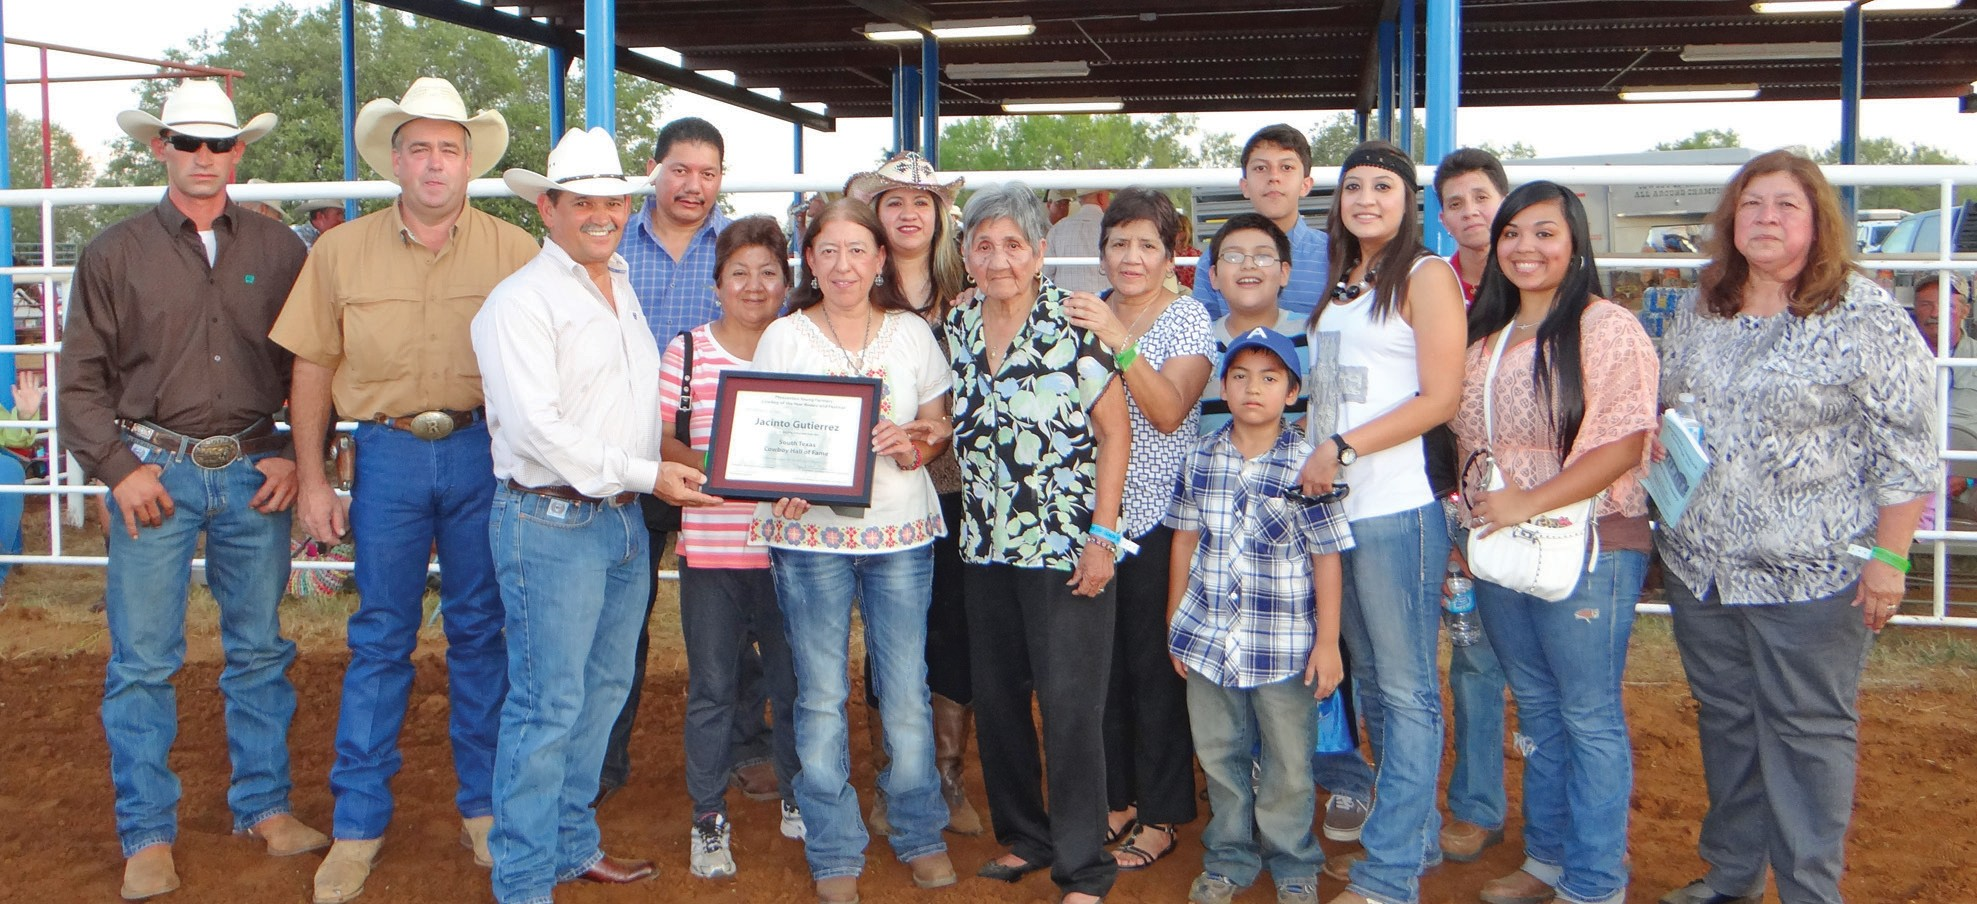 The family of Jacinto Gutierrez, Jr. gathered to honortheir father and grandfather's posthumously induction into the South Texas Cowboy Hall of Fame during the Pleasanton Young Farmers Cowboy of the Year Rodeo and Festival held this past Friday, August 16. From left are Pleasanton Young Farmers Dustin Neal and Randy Rice (PYF President) and Joel McDaniel 1990 Cowboy of the Year and Selection Committee Chair who presented the certificate to the family, (from left) Lupe Fernandez, Olivia Gutierrez, Mary Calvillo, Yolanda Murillo, Gloria Fernandez, Lydia Huntington, Evan Romero (in cap), Jade Romero, Pilo Calvillo, Stephanie Calvillo, Rachel Macias,Samantha Garza and Dora Barrera.